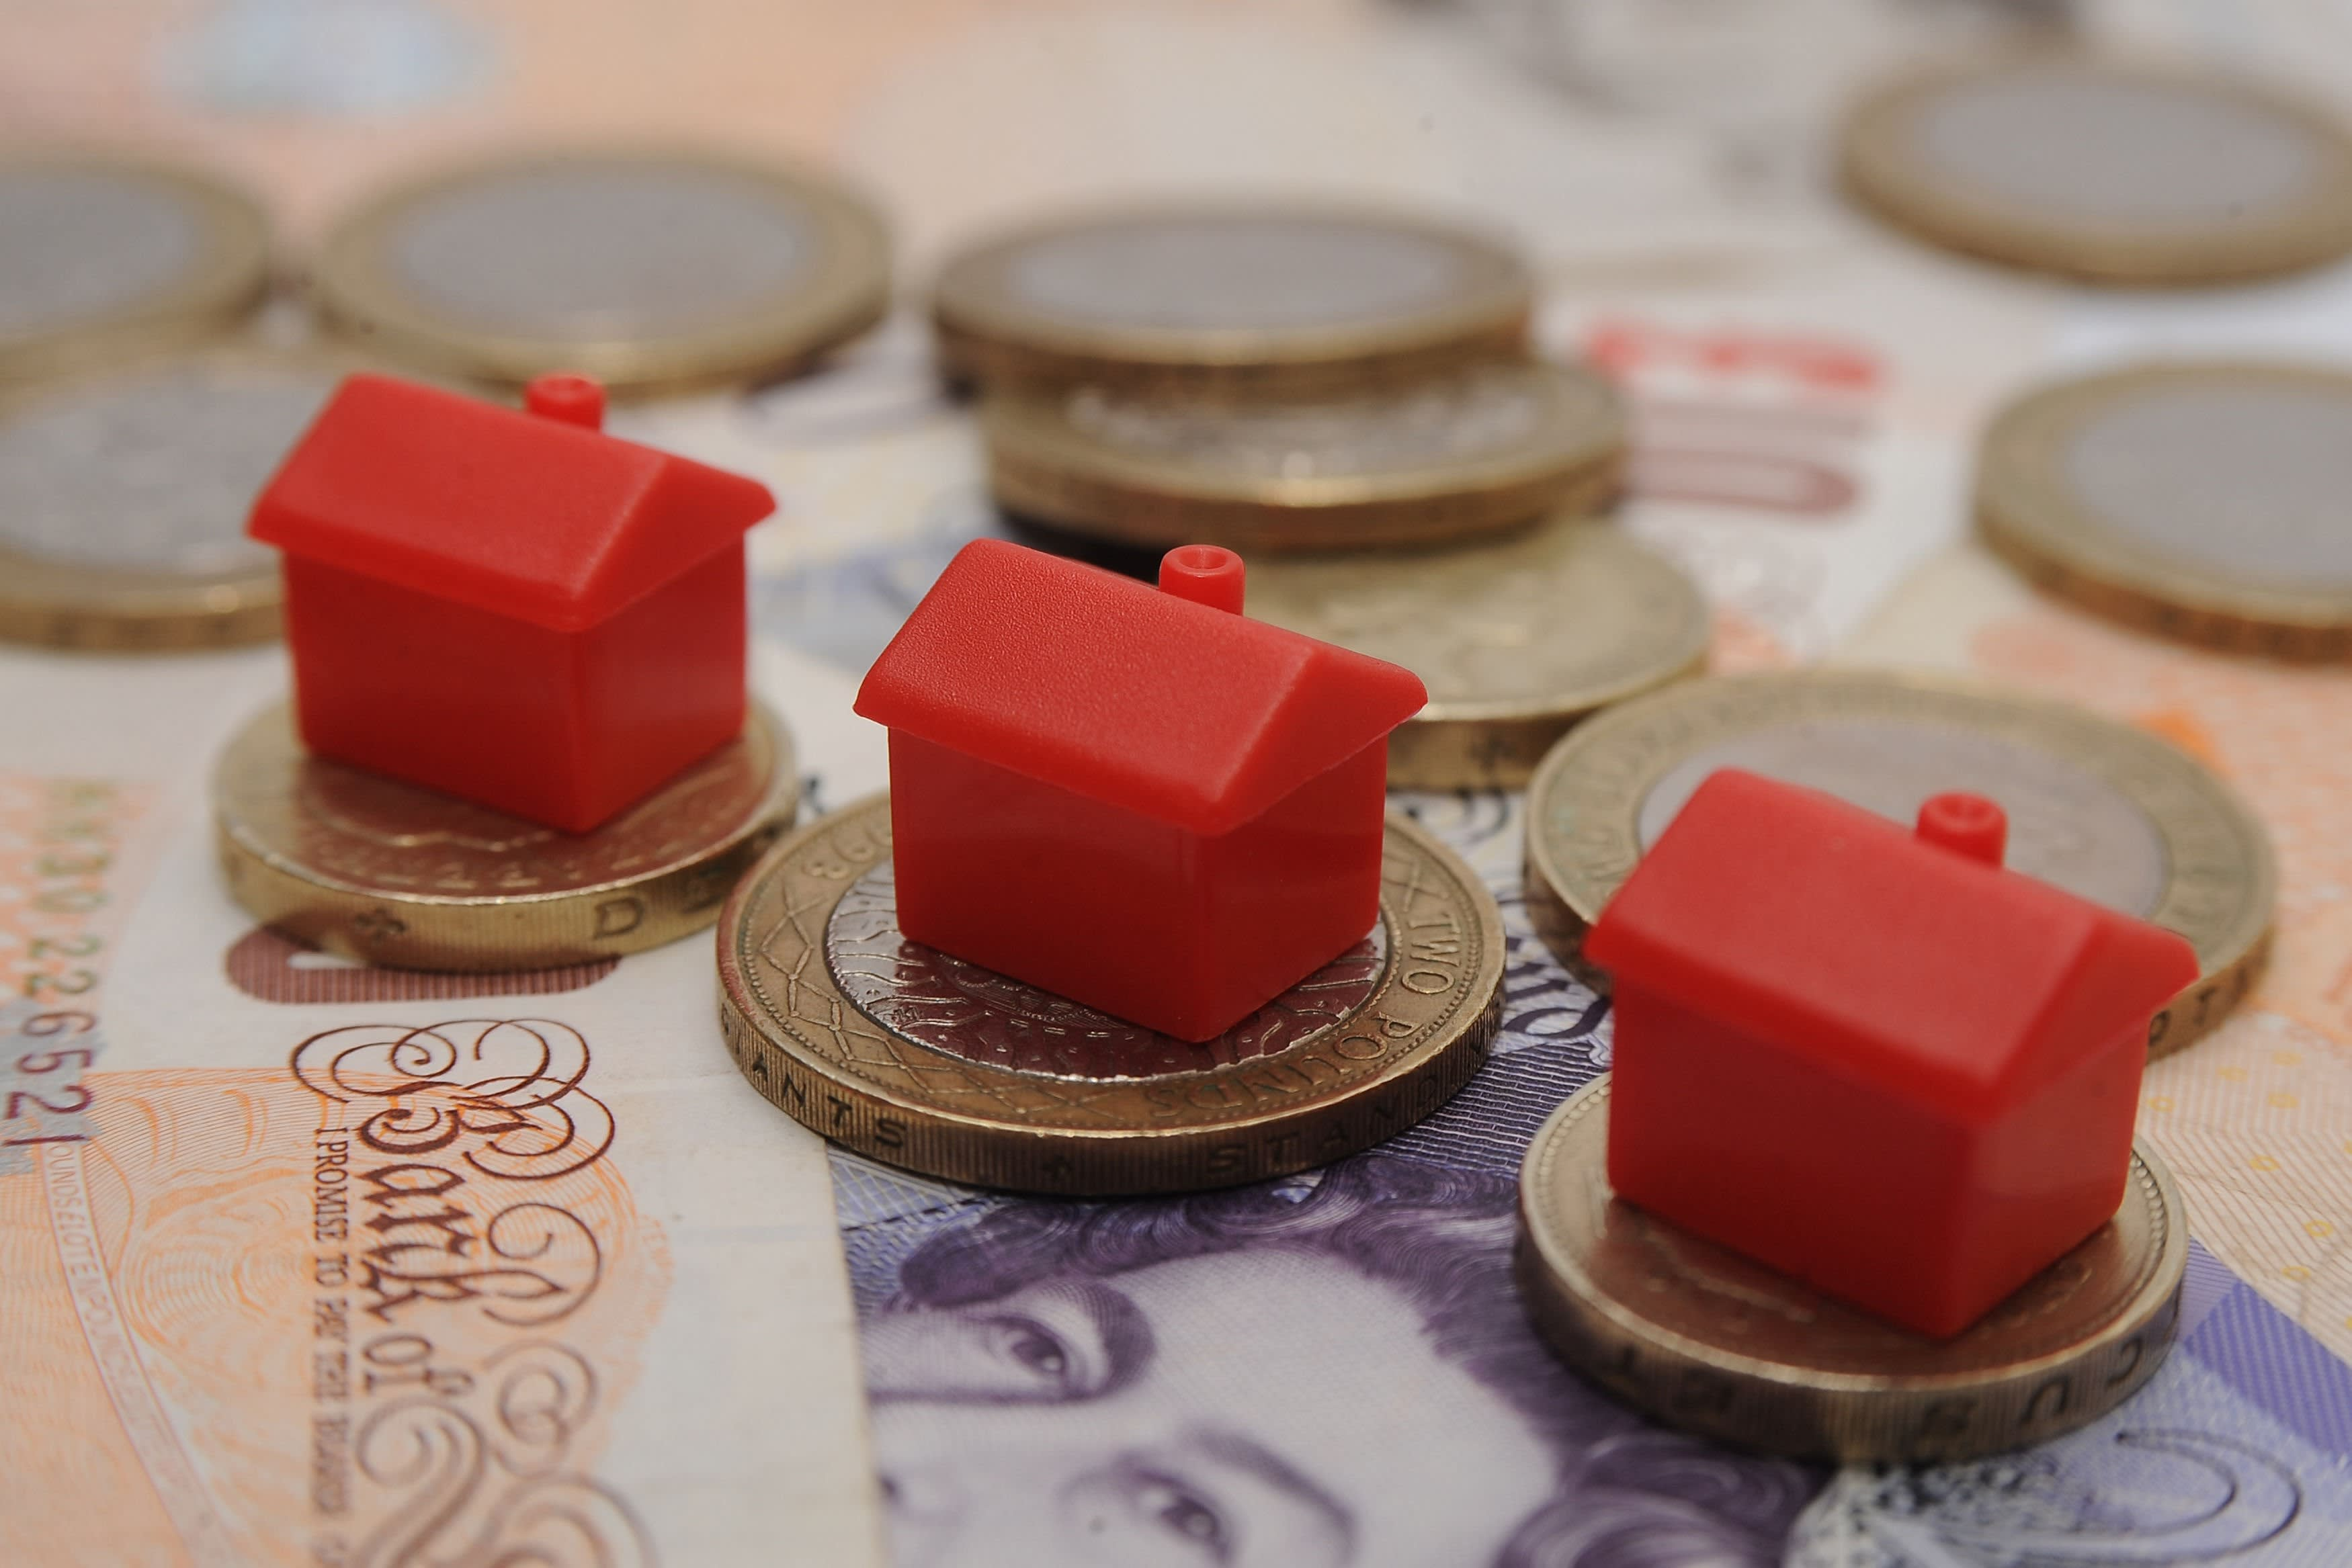 Lender makes 'full return' to mortgage market